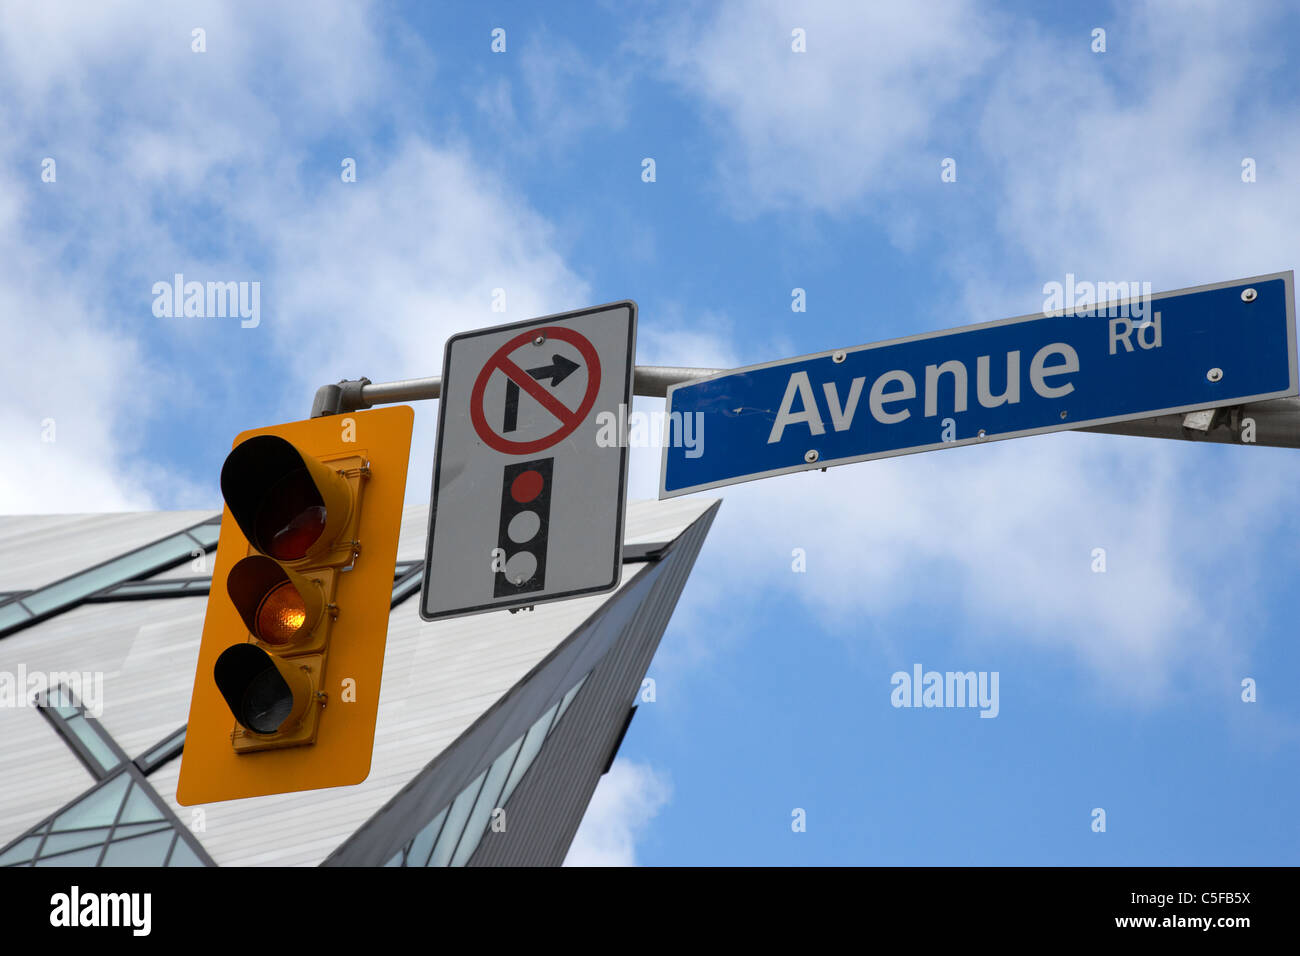 traffic light signals and no right turn on red signs in avenue road downtown toronto ontario & red [traffic light] and